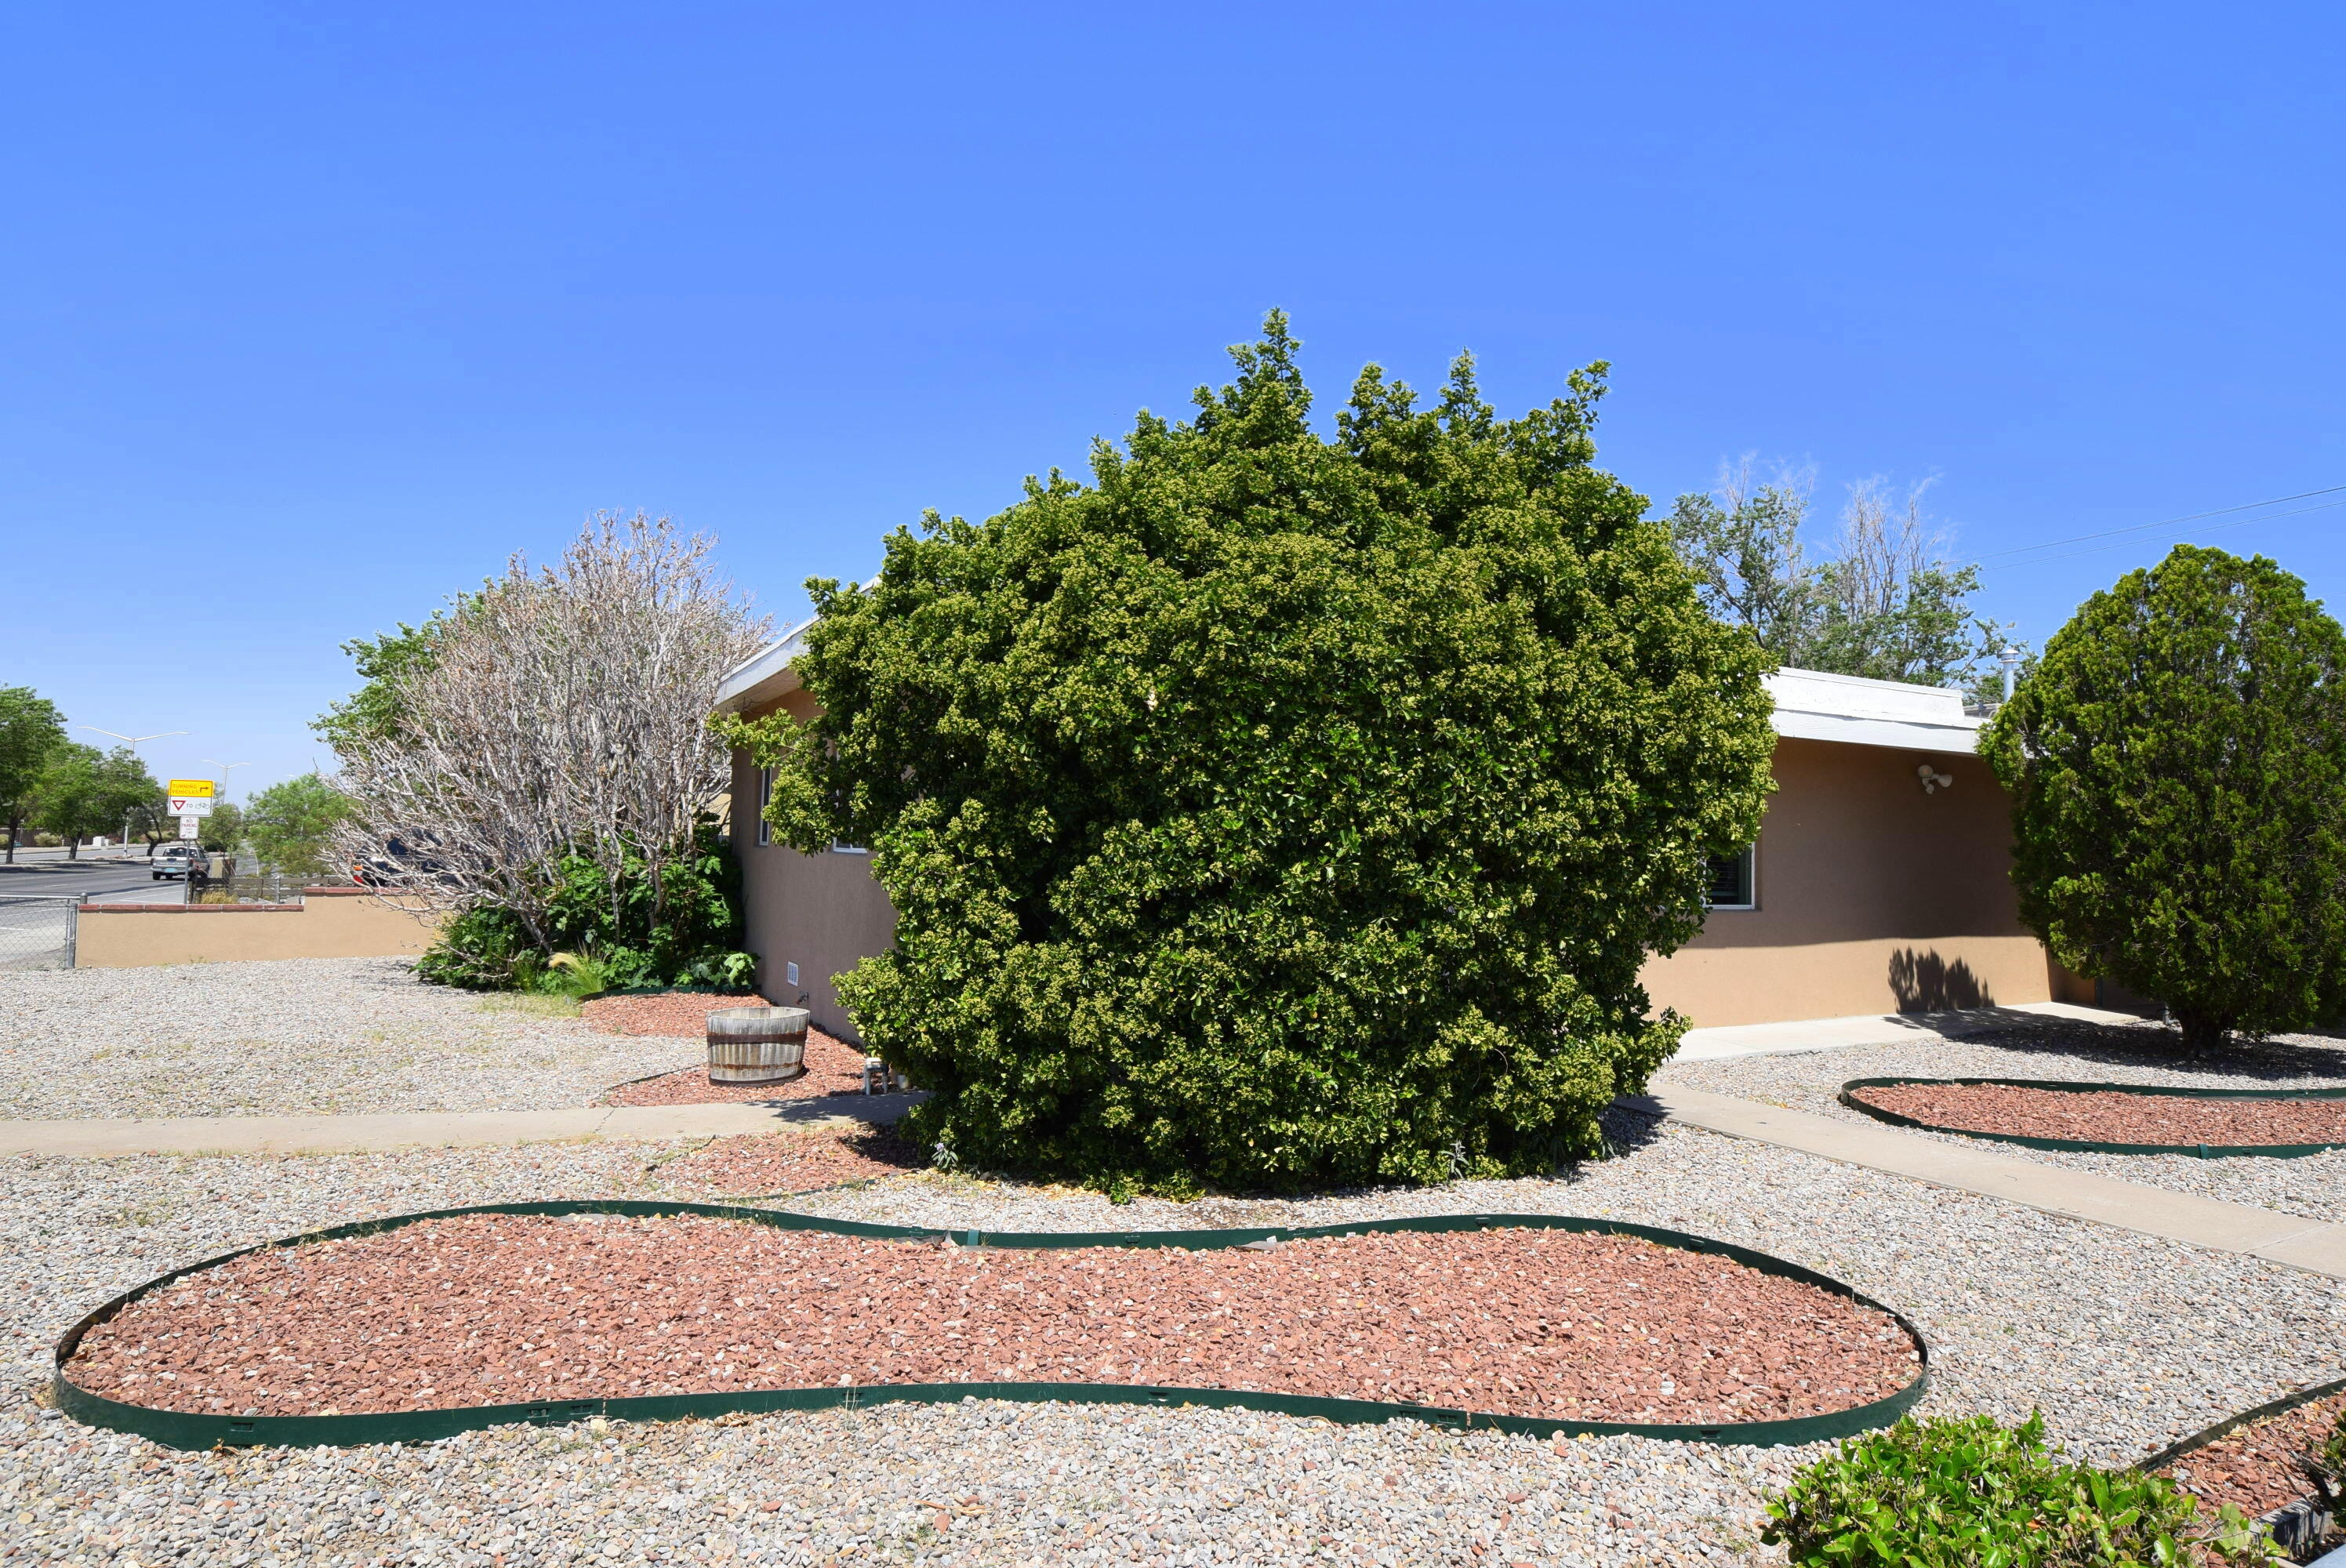 Don't miss out on this one. Exceptionally clean remodel with so MANY possibilities. A HUGE yard ready for an additional income property or garage. The Front house is a 3 bedroom, 1 full bath that boasts granite countertops, stainless steel appliances, wood and tile flooring, breakfast bar, with Refrigerated air and it's own yard space. The back house is a cozy one bedroom, walk-in tile shower, with an open floor plan and opens to the huge yard. The main entrance is off Quency and has covered parking and storage. Great for Multigenerational living or an owner occupant income property. All electrical, plumbing, windows, water heater, furnace, counters, flooring and much more were upgraded in 2016. Conveniently located near base, VA and many more amenities. Enjoy the fruit trees!